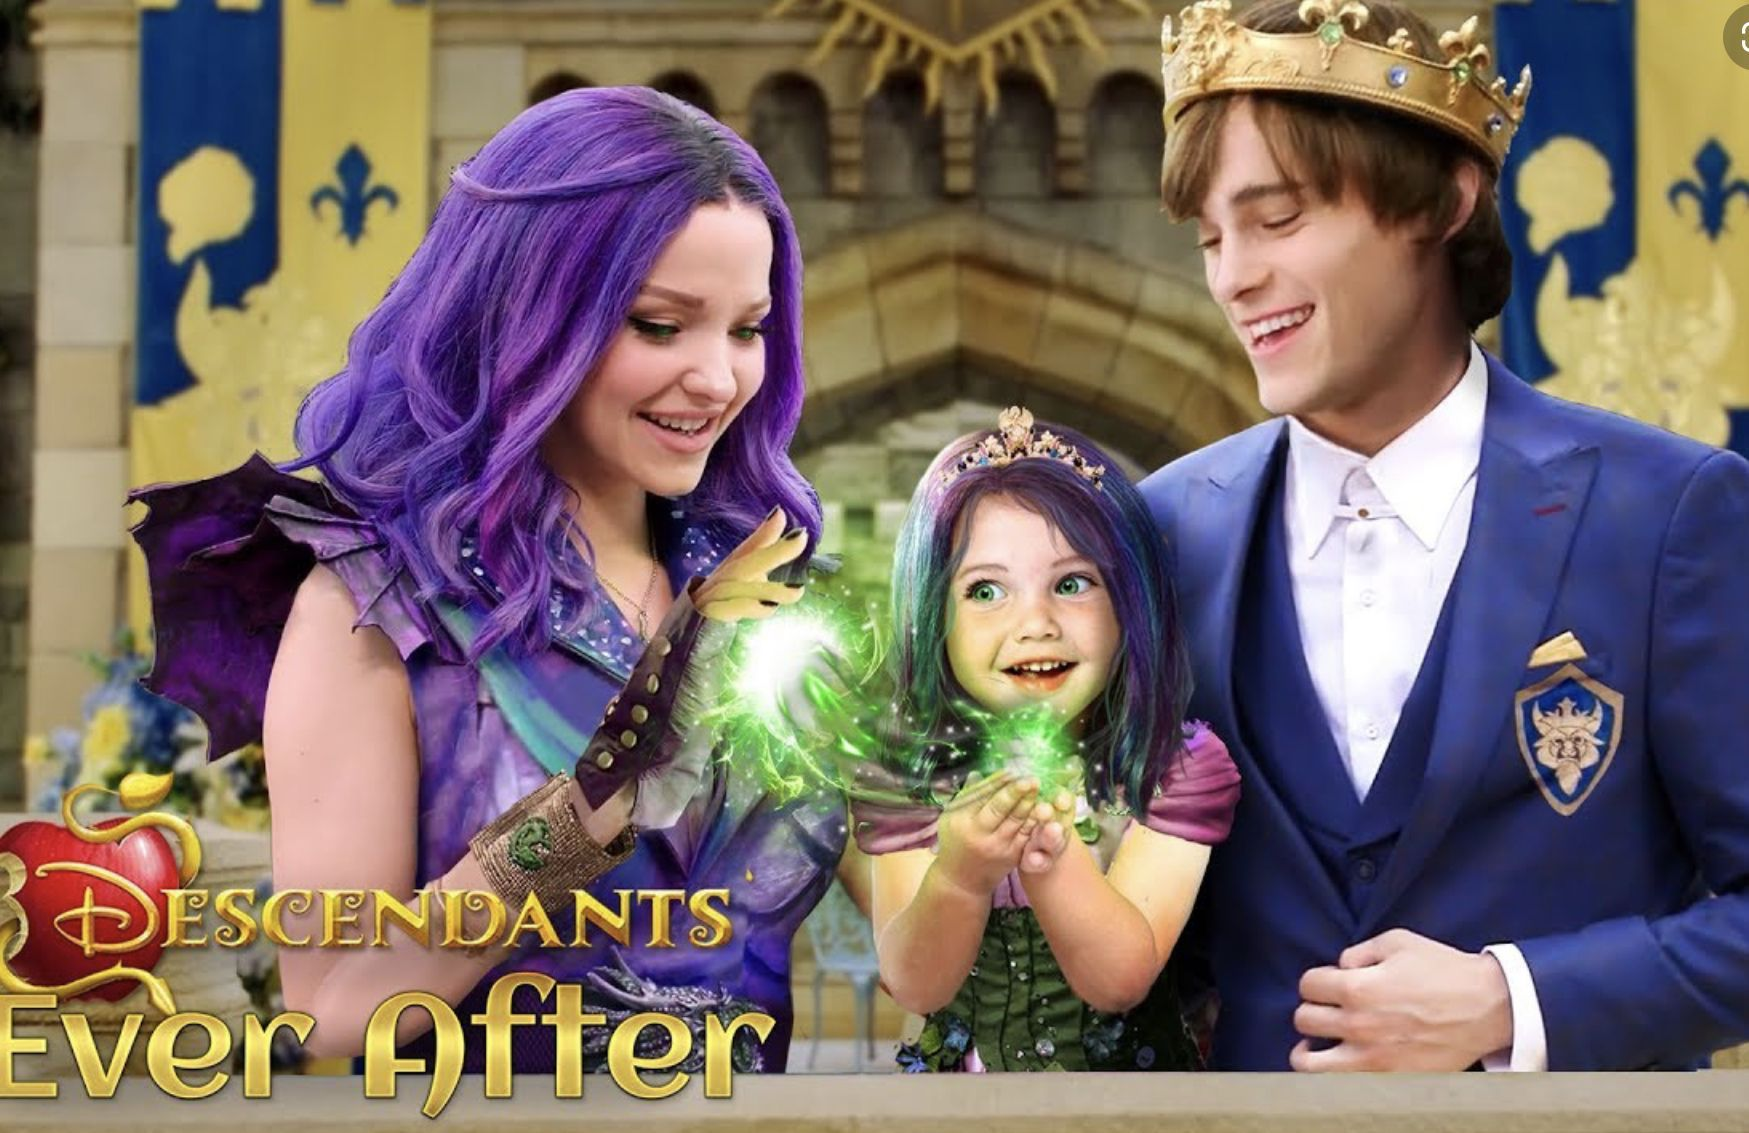 Daughter Of Mal Part 4 Maleficent The Descendants Movie Descendants Characters Disney Channel Descendants